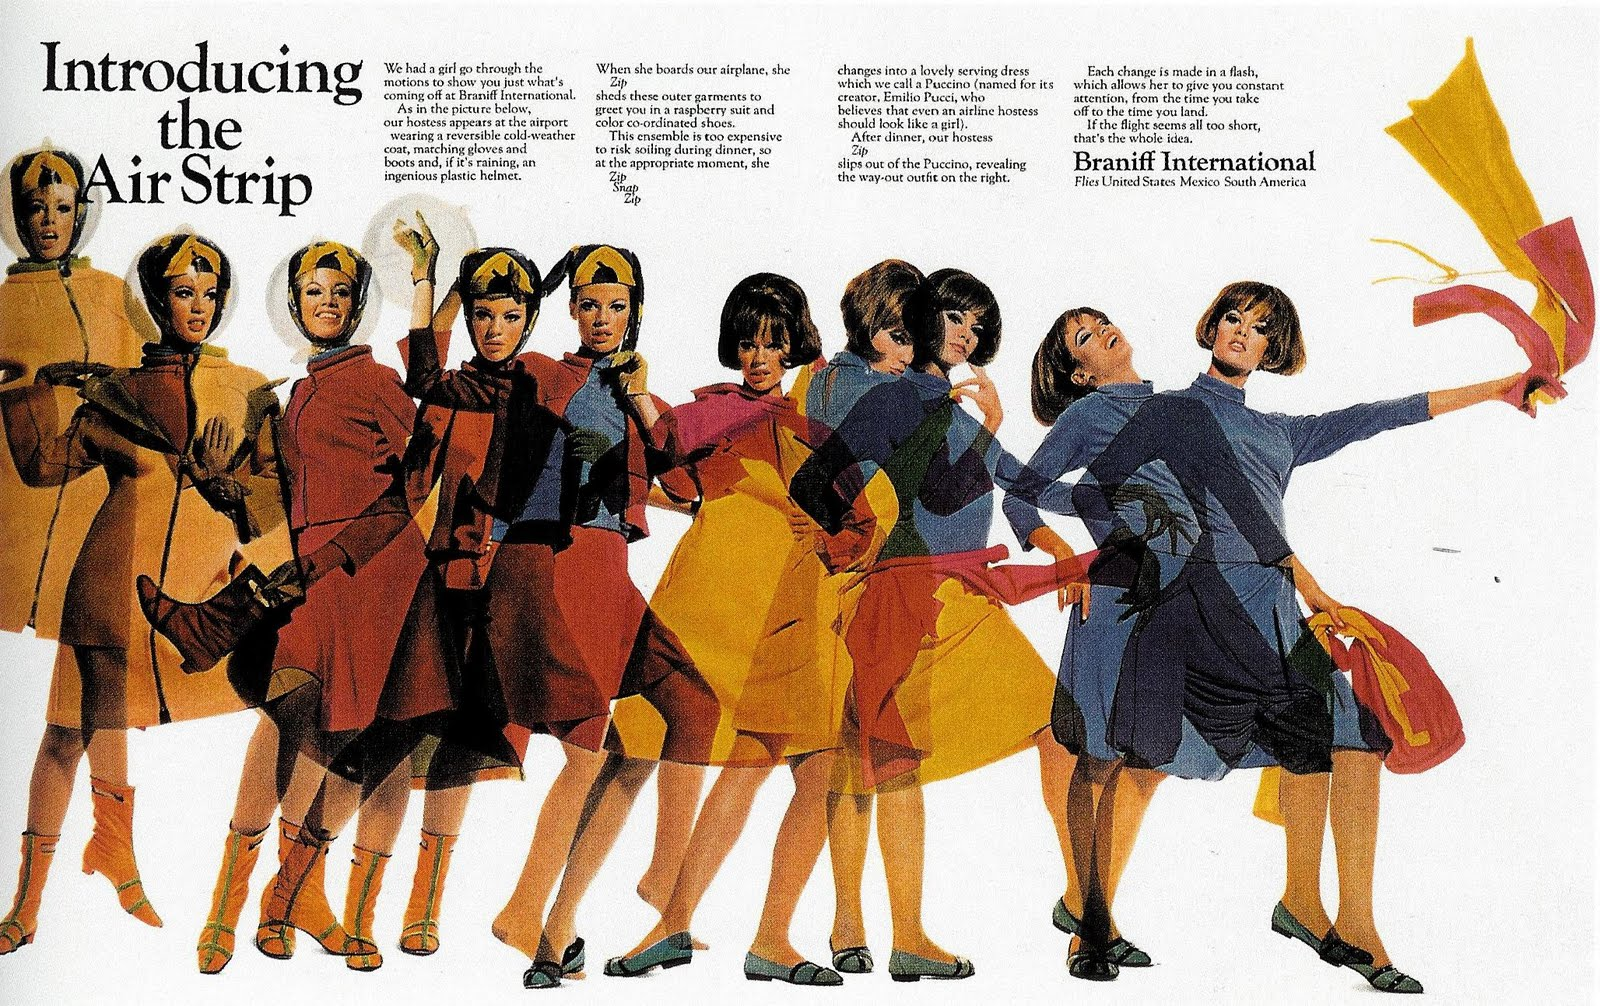 Advertisement showing the various outfits a Braniff International air hostess would wear